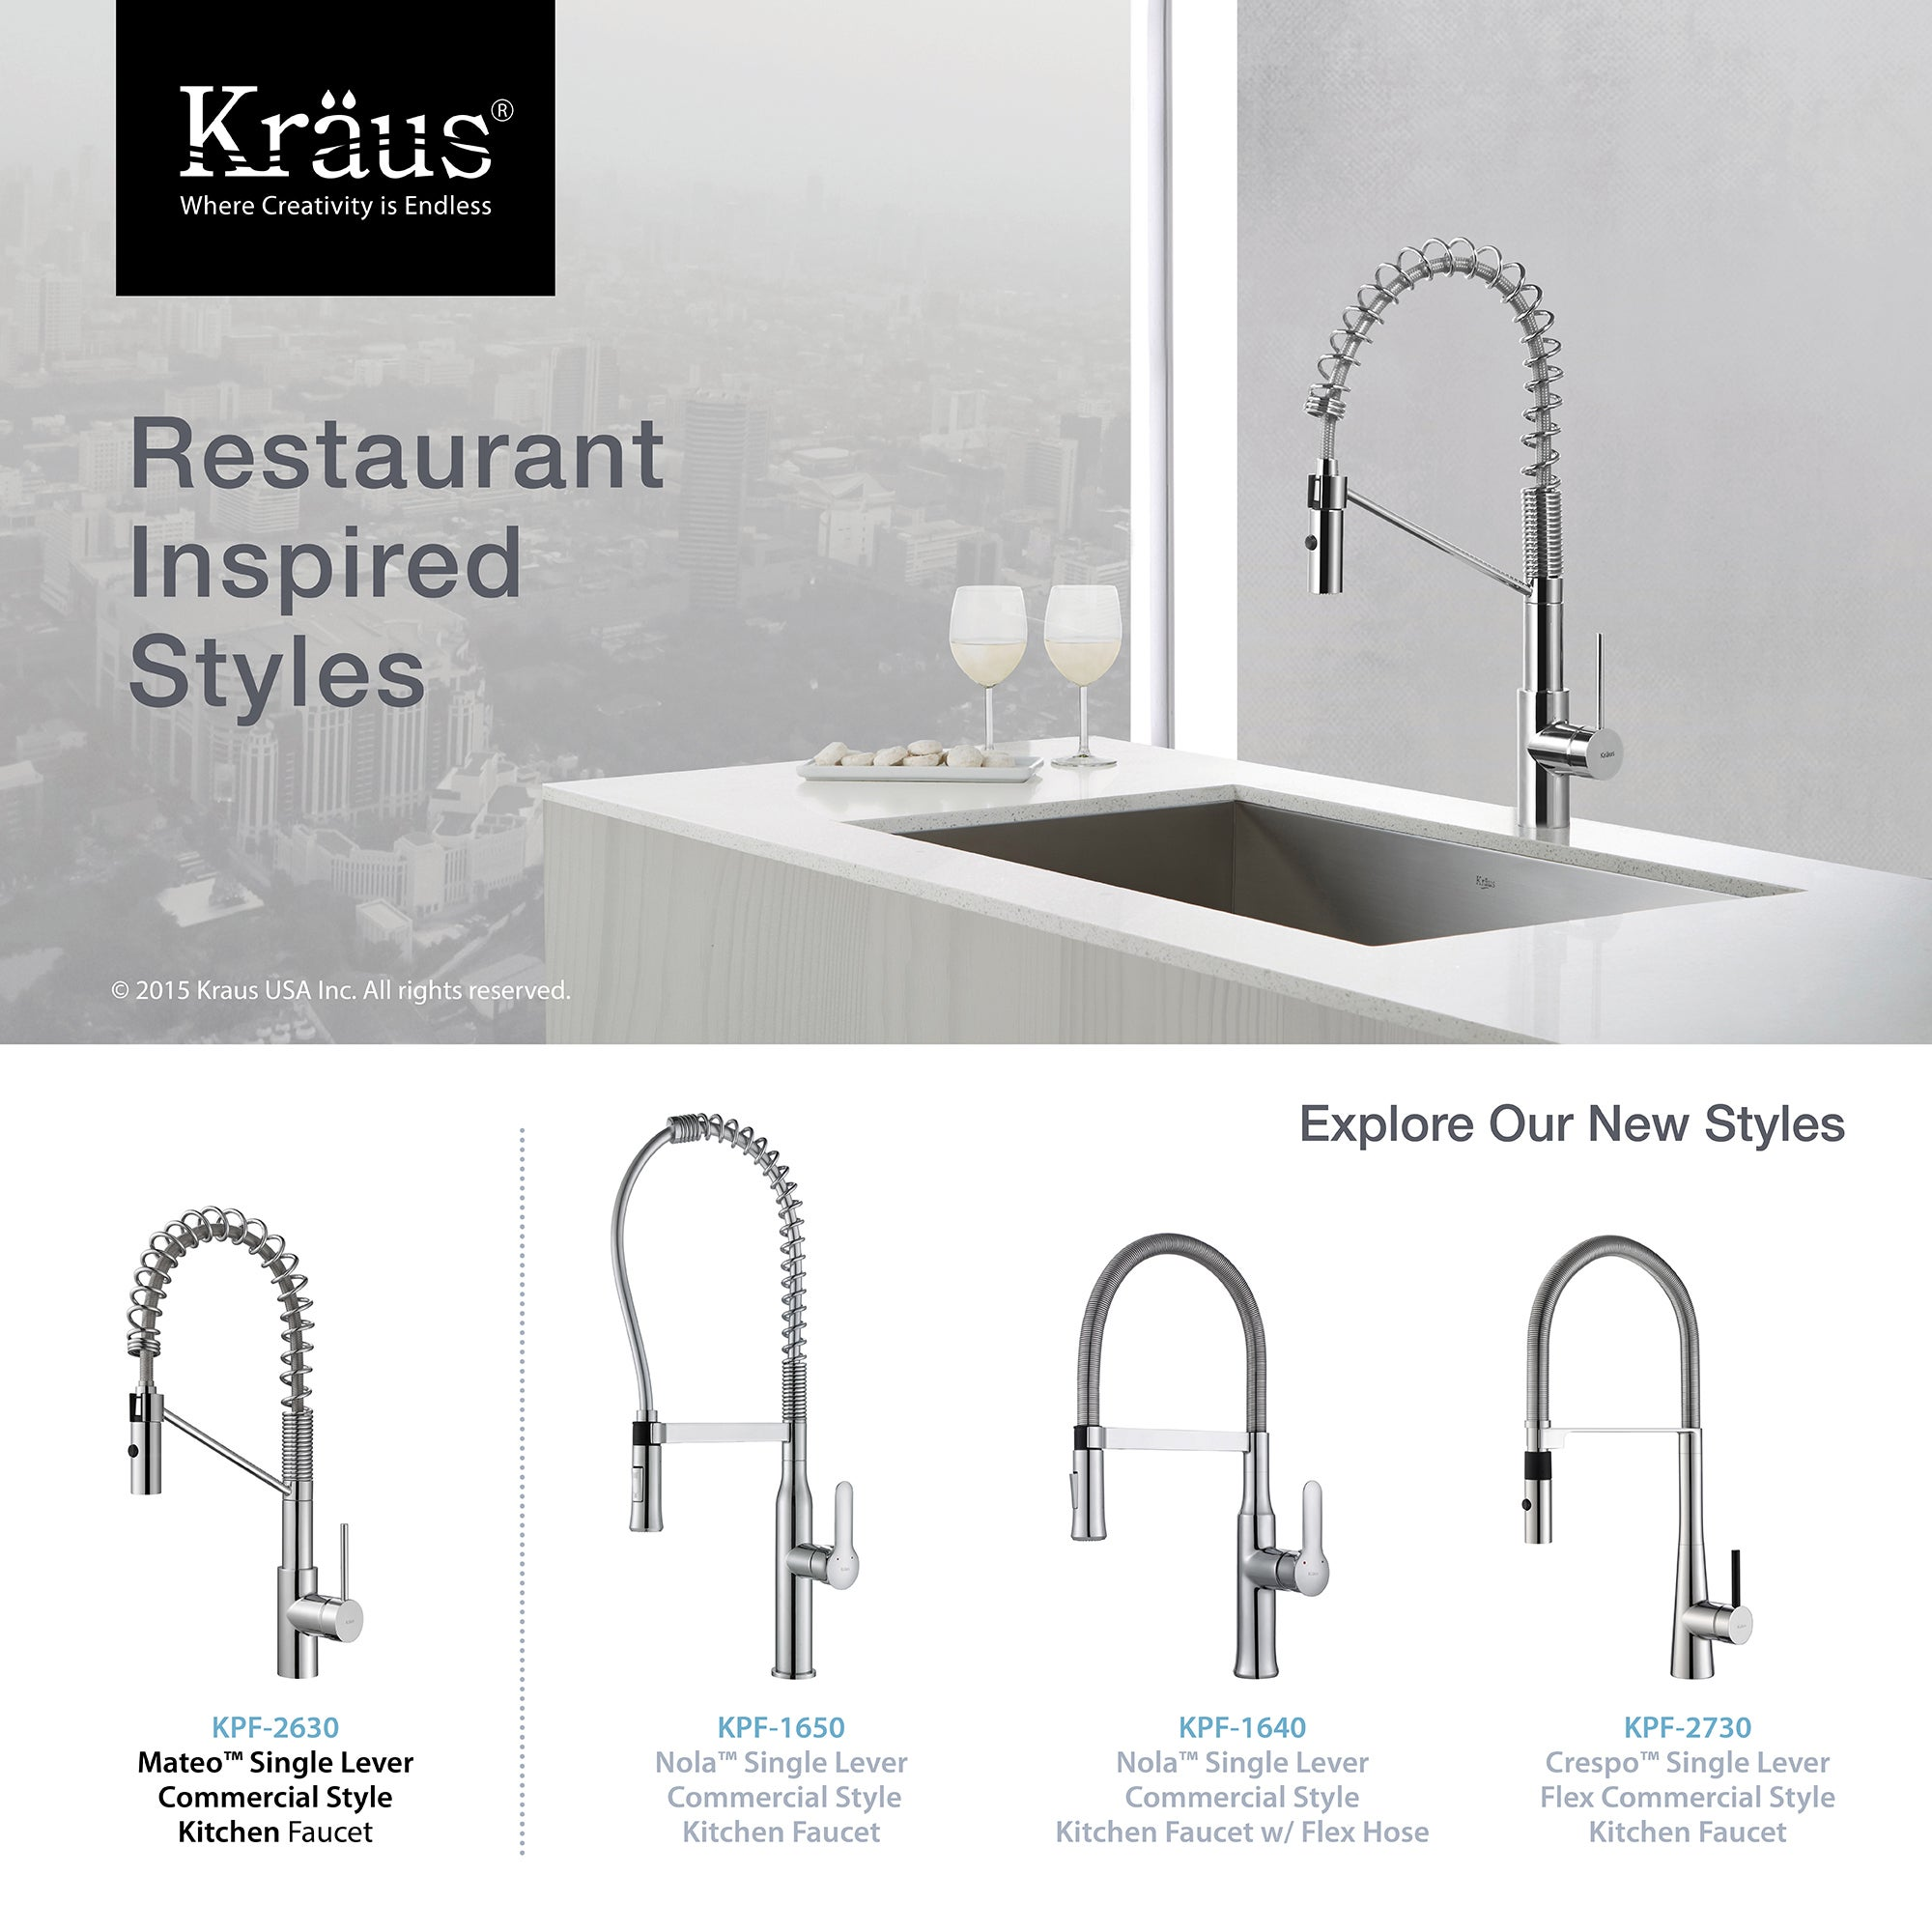 out down set faucet kpf commercial with dispenser single rinse pre lever style ksd soap com and pull kitchen kraususa handle sprayer kraus